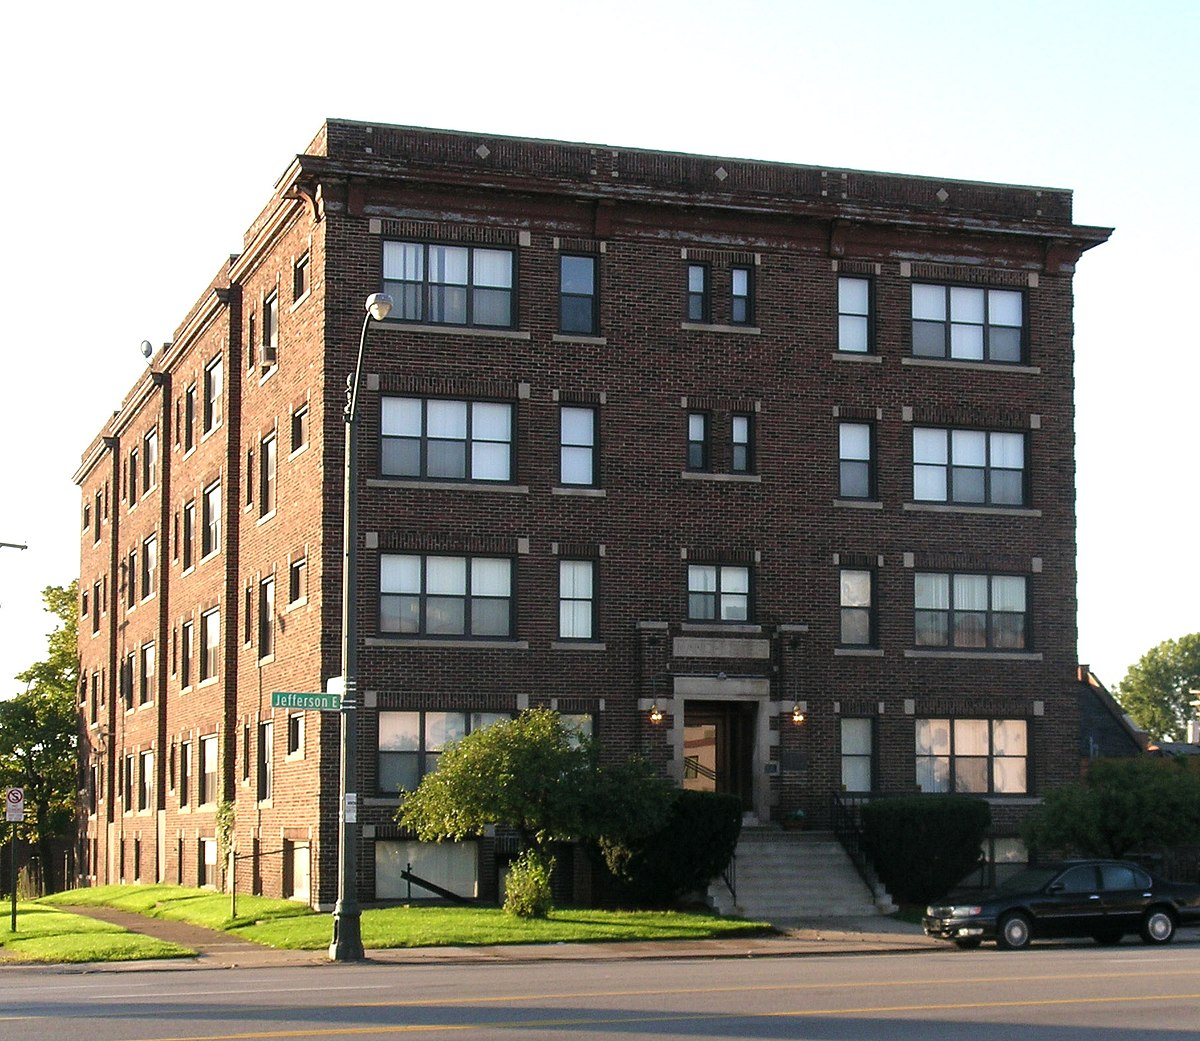 The Jefferson Apartments: Manchester Apartments (Detroit, Michigan)